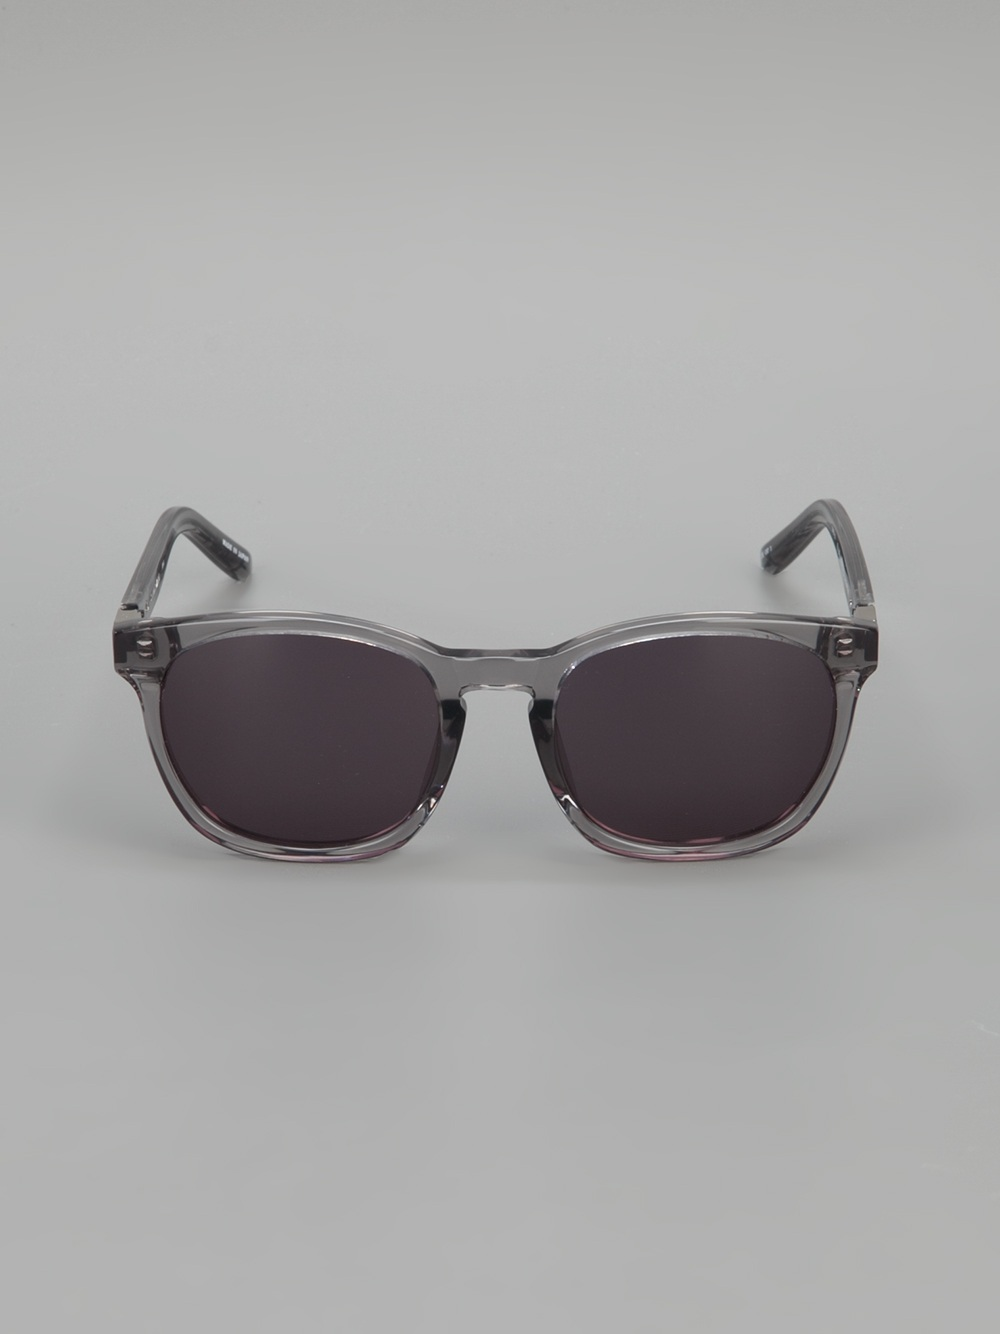 daf2d65844 Alexander wang transparent sunglasses in black lyst jpg 1000x1334 Alexander  wang shades